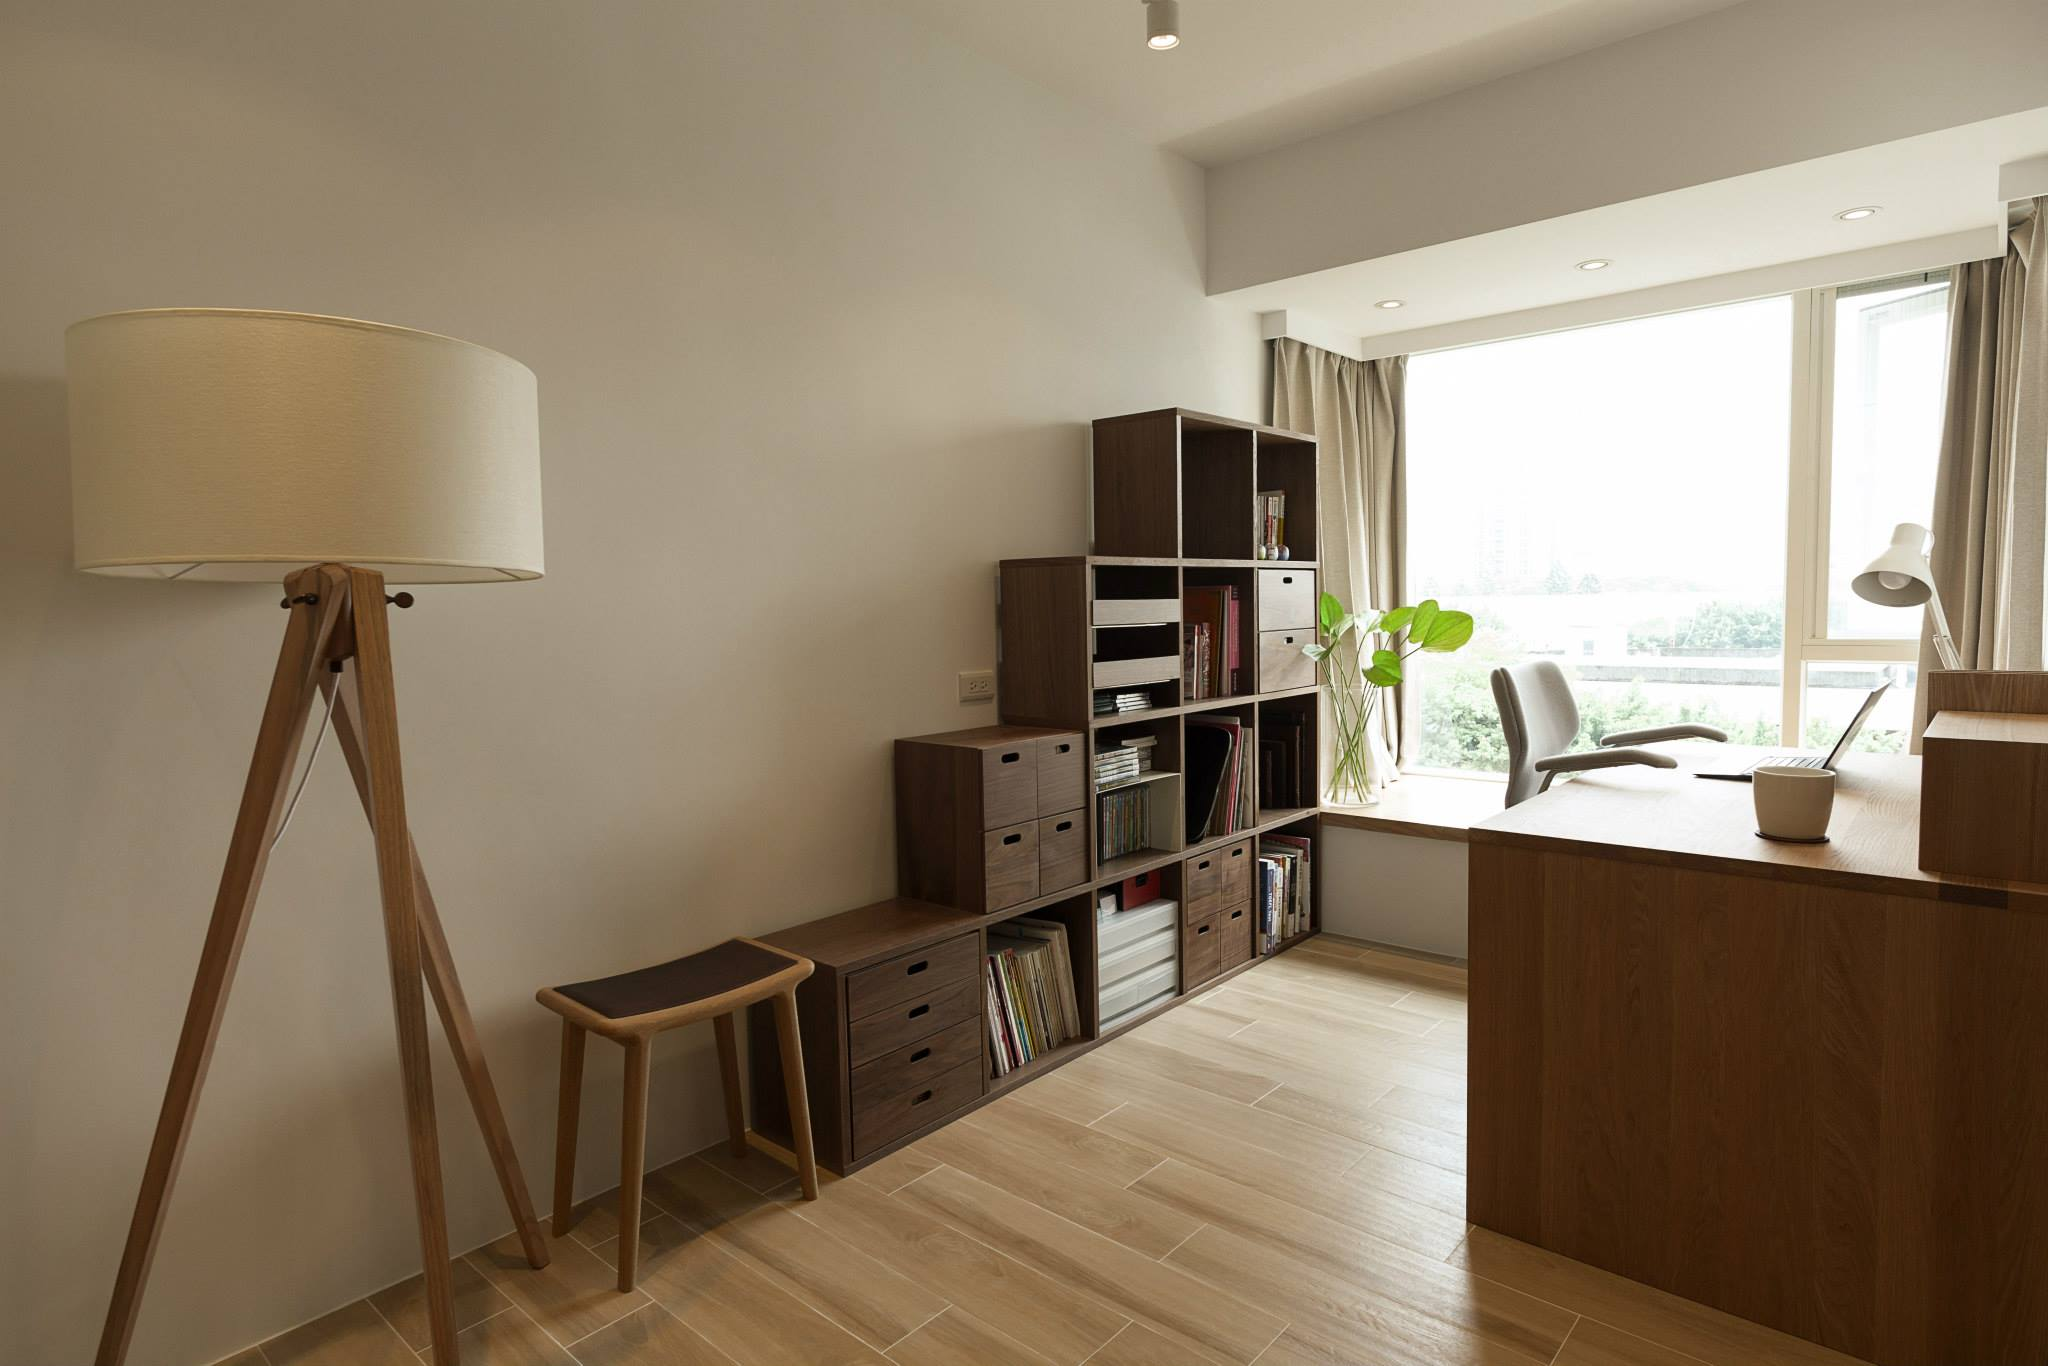 Muji style home part 2 2 spoonful of home design - House of design ...